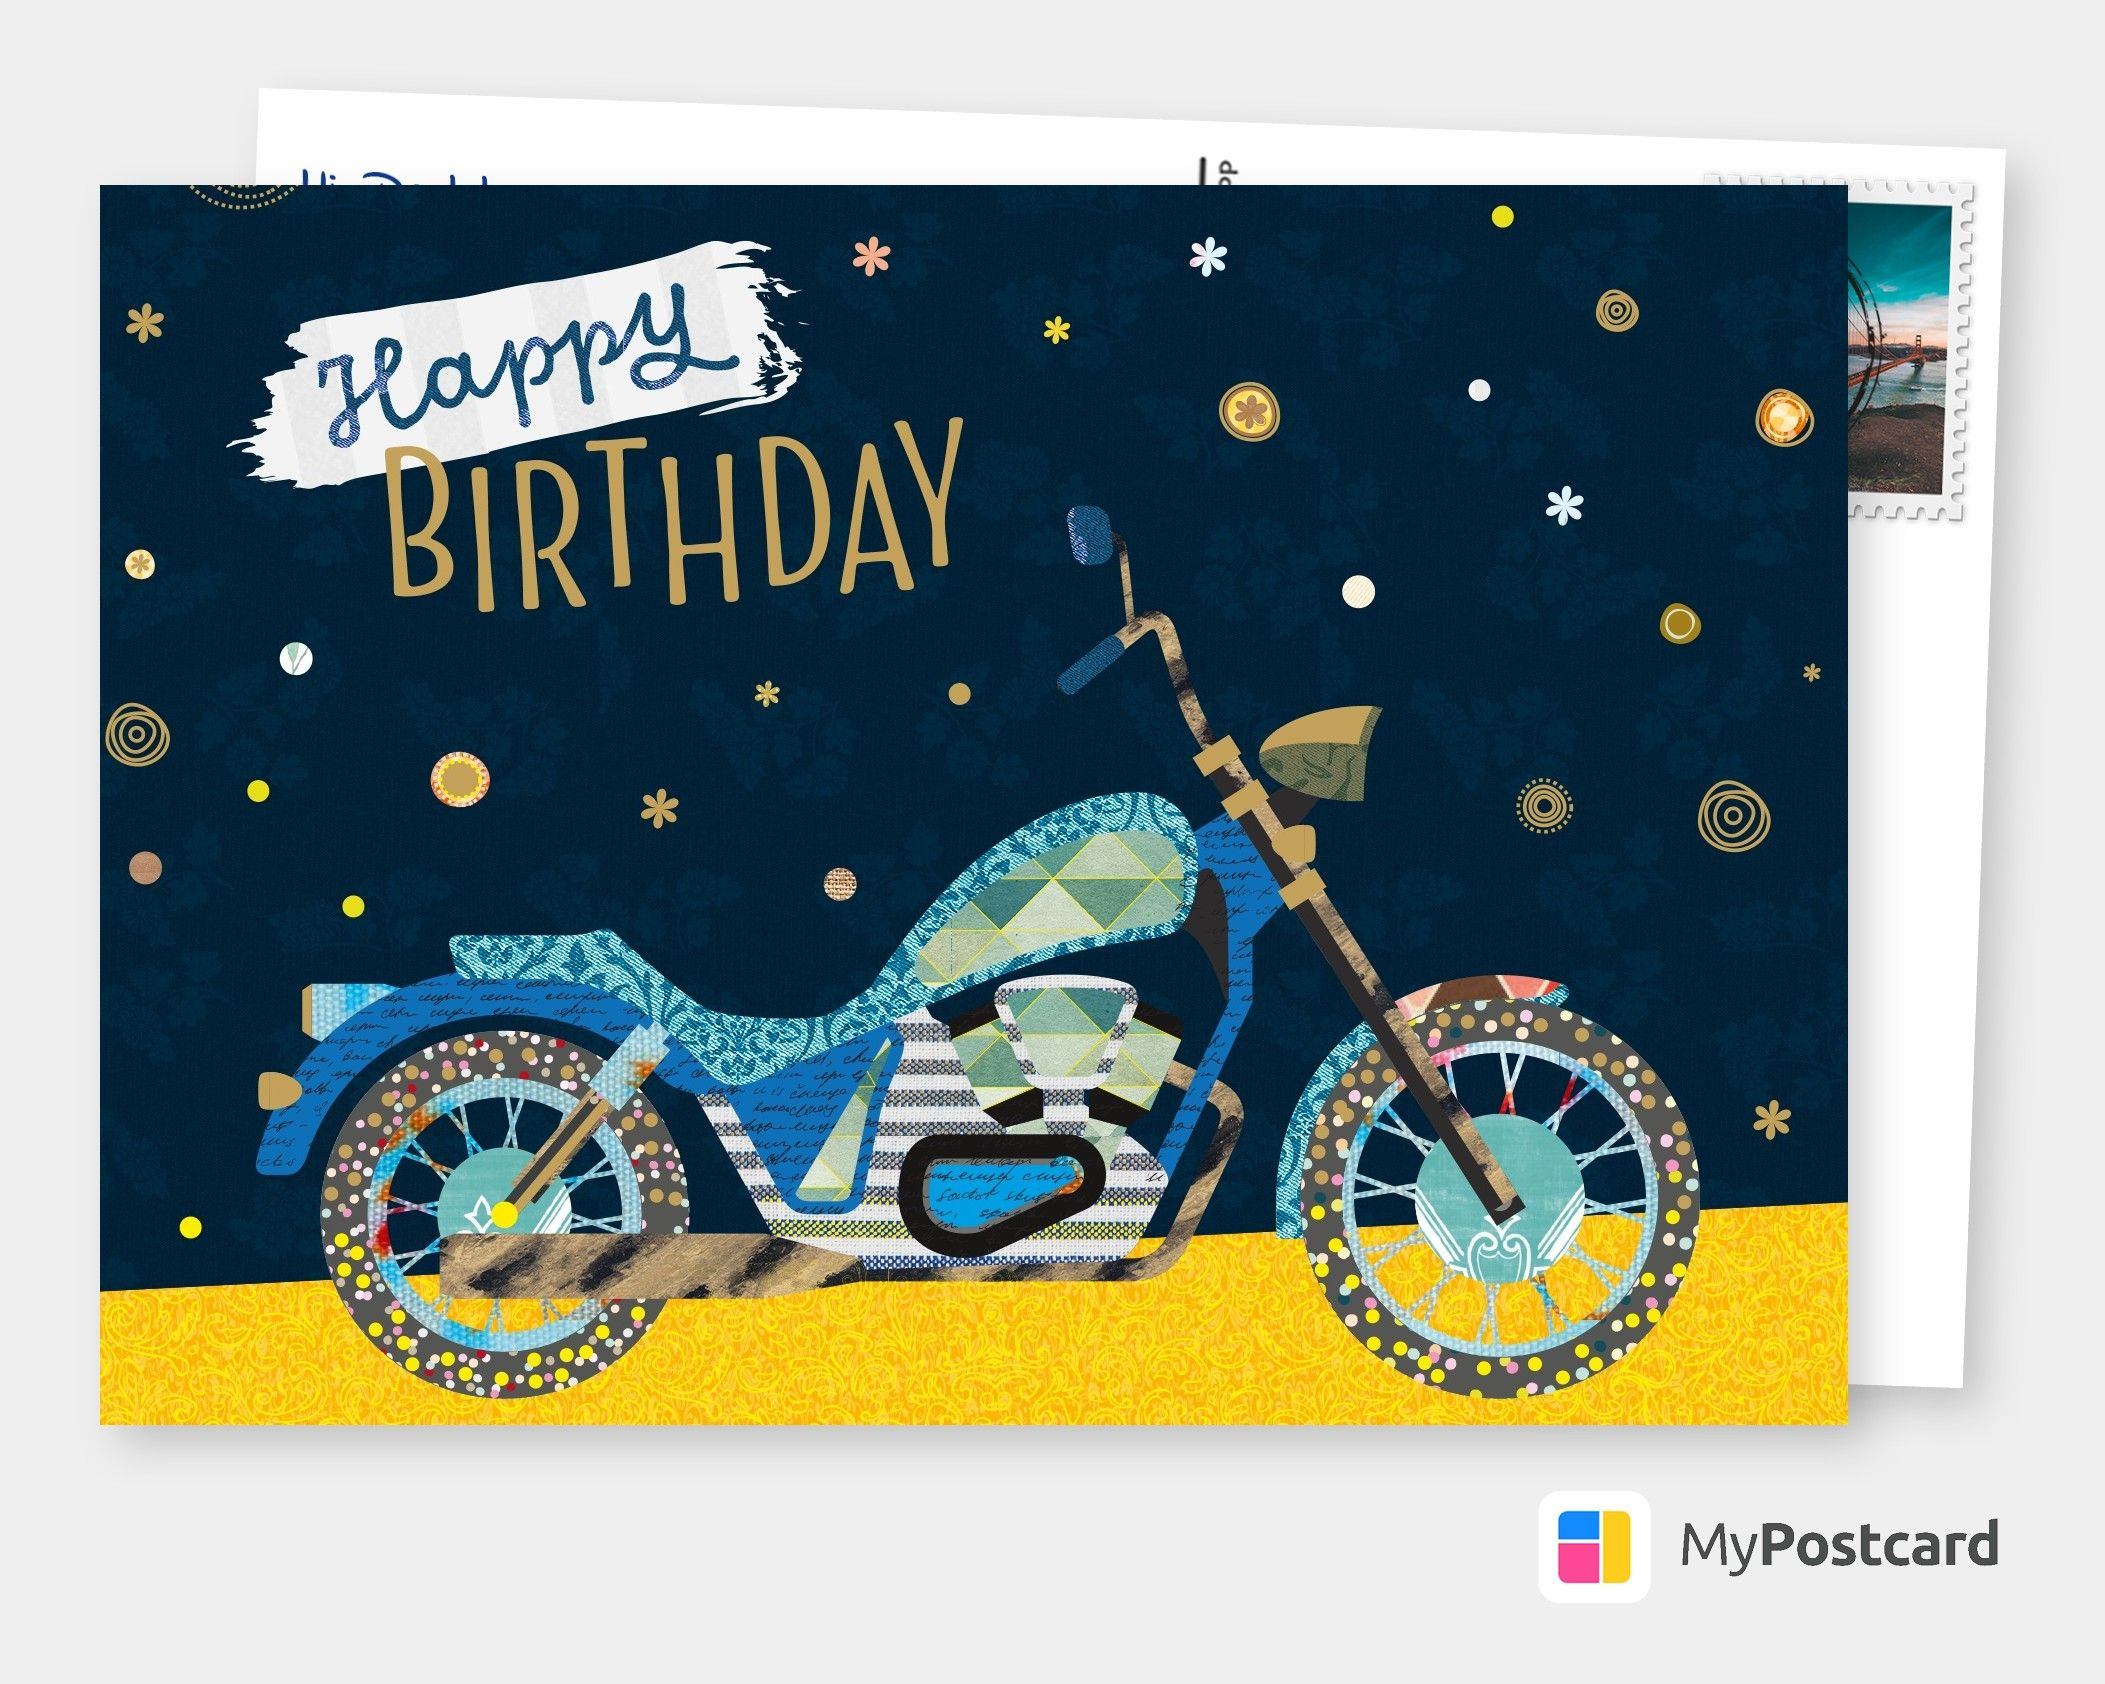 Personalized Free Happy Birthday Cards Templates Printable And Mailed For You International Free Shipping Worldwide Postcard Service Or Postcards App Happy Birthday Cards Birthday Card Template Free Happy Birthday Cards